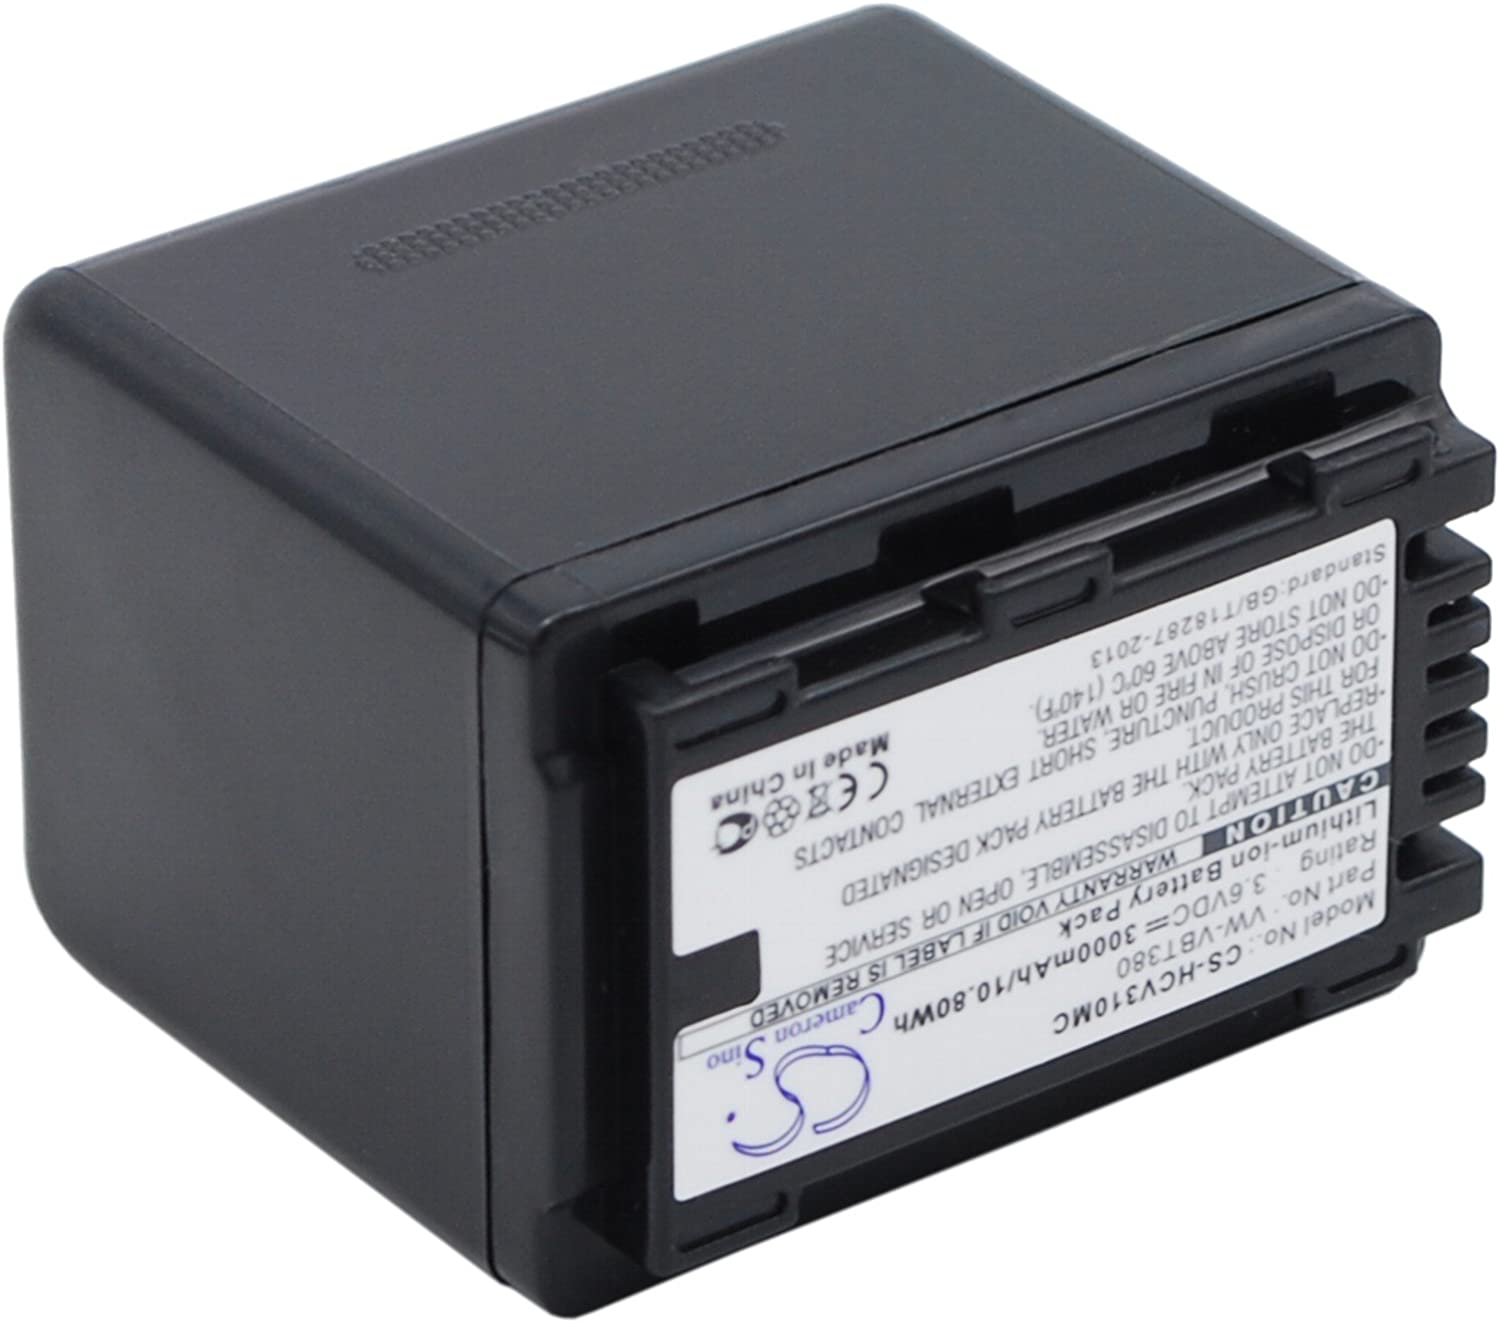 XPS Replacement Battery Compatible with PANASONIC HC-250EB HC-550EB HC-727EB HC-750EB HC-770EB HC-989 HC-V110 HC-V110GK HC-V110MGK HC-V130 HC-V210 HC-V210GK HC-V210M HC-V210MGK PN VW-VBT380